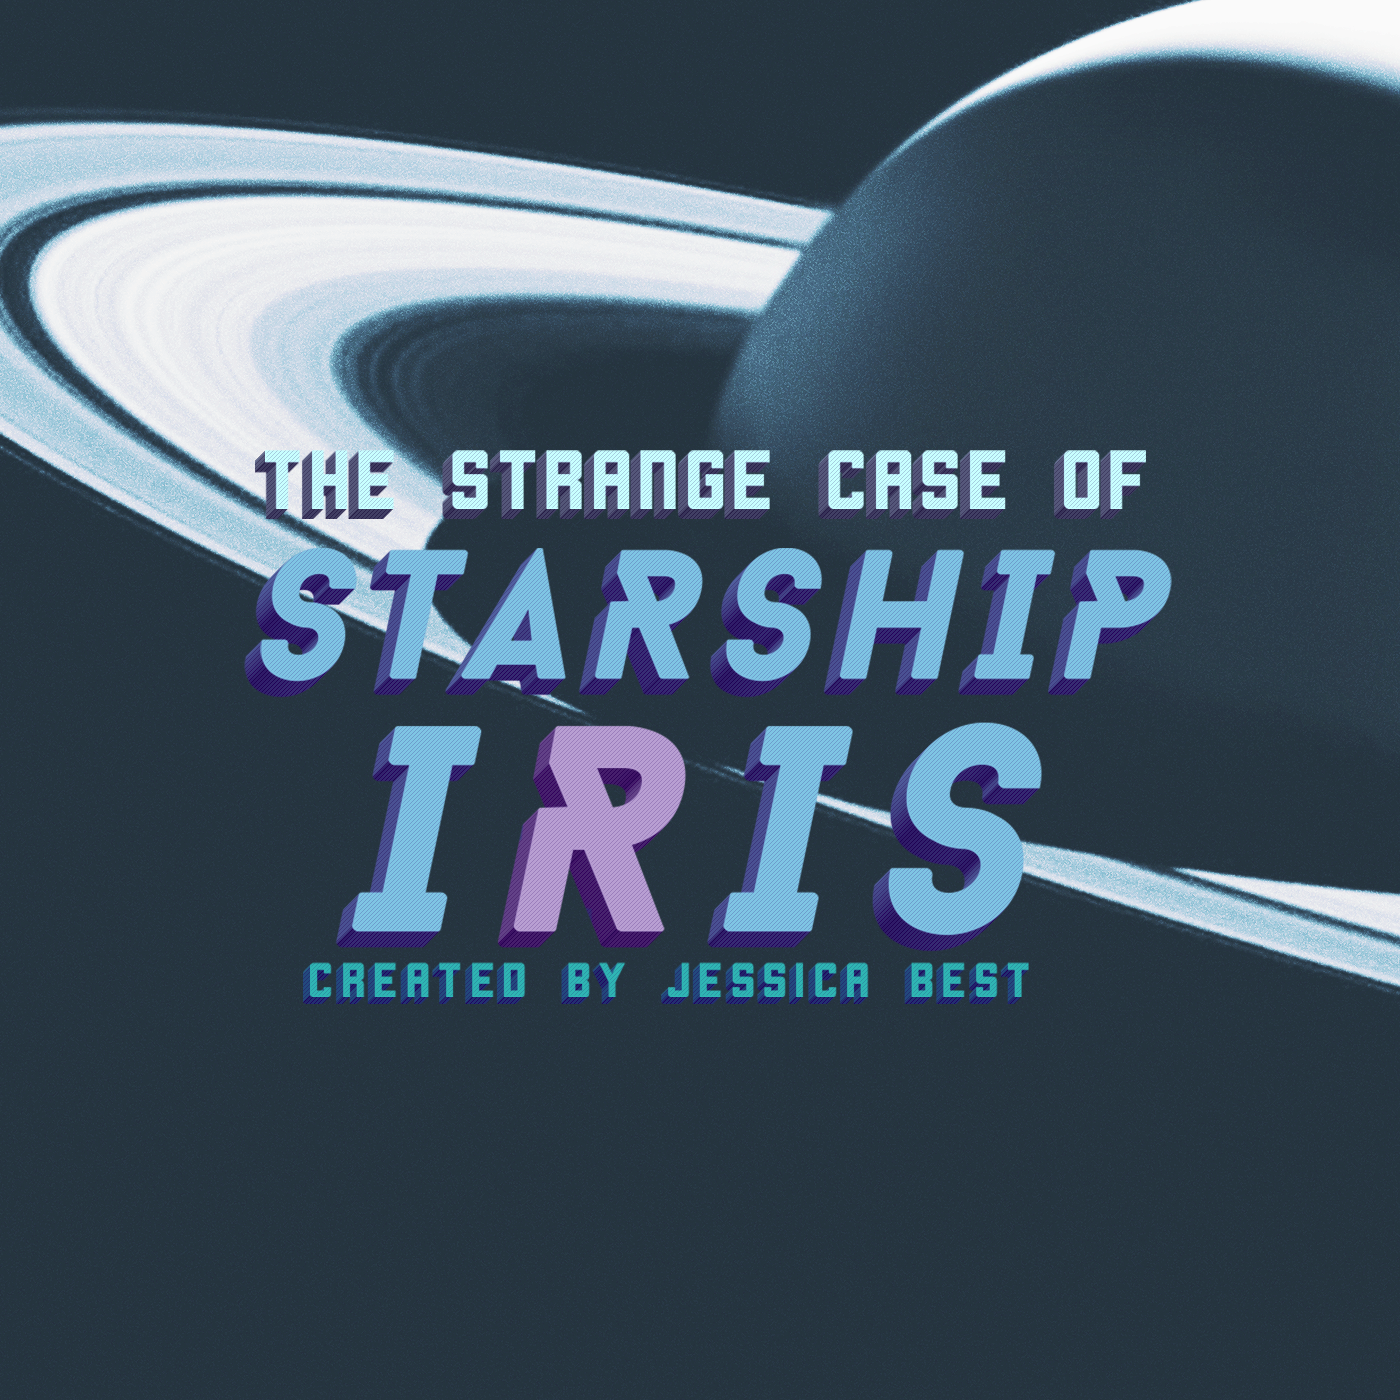 The Strange Case of Starship Iris Podcast